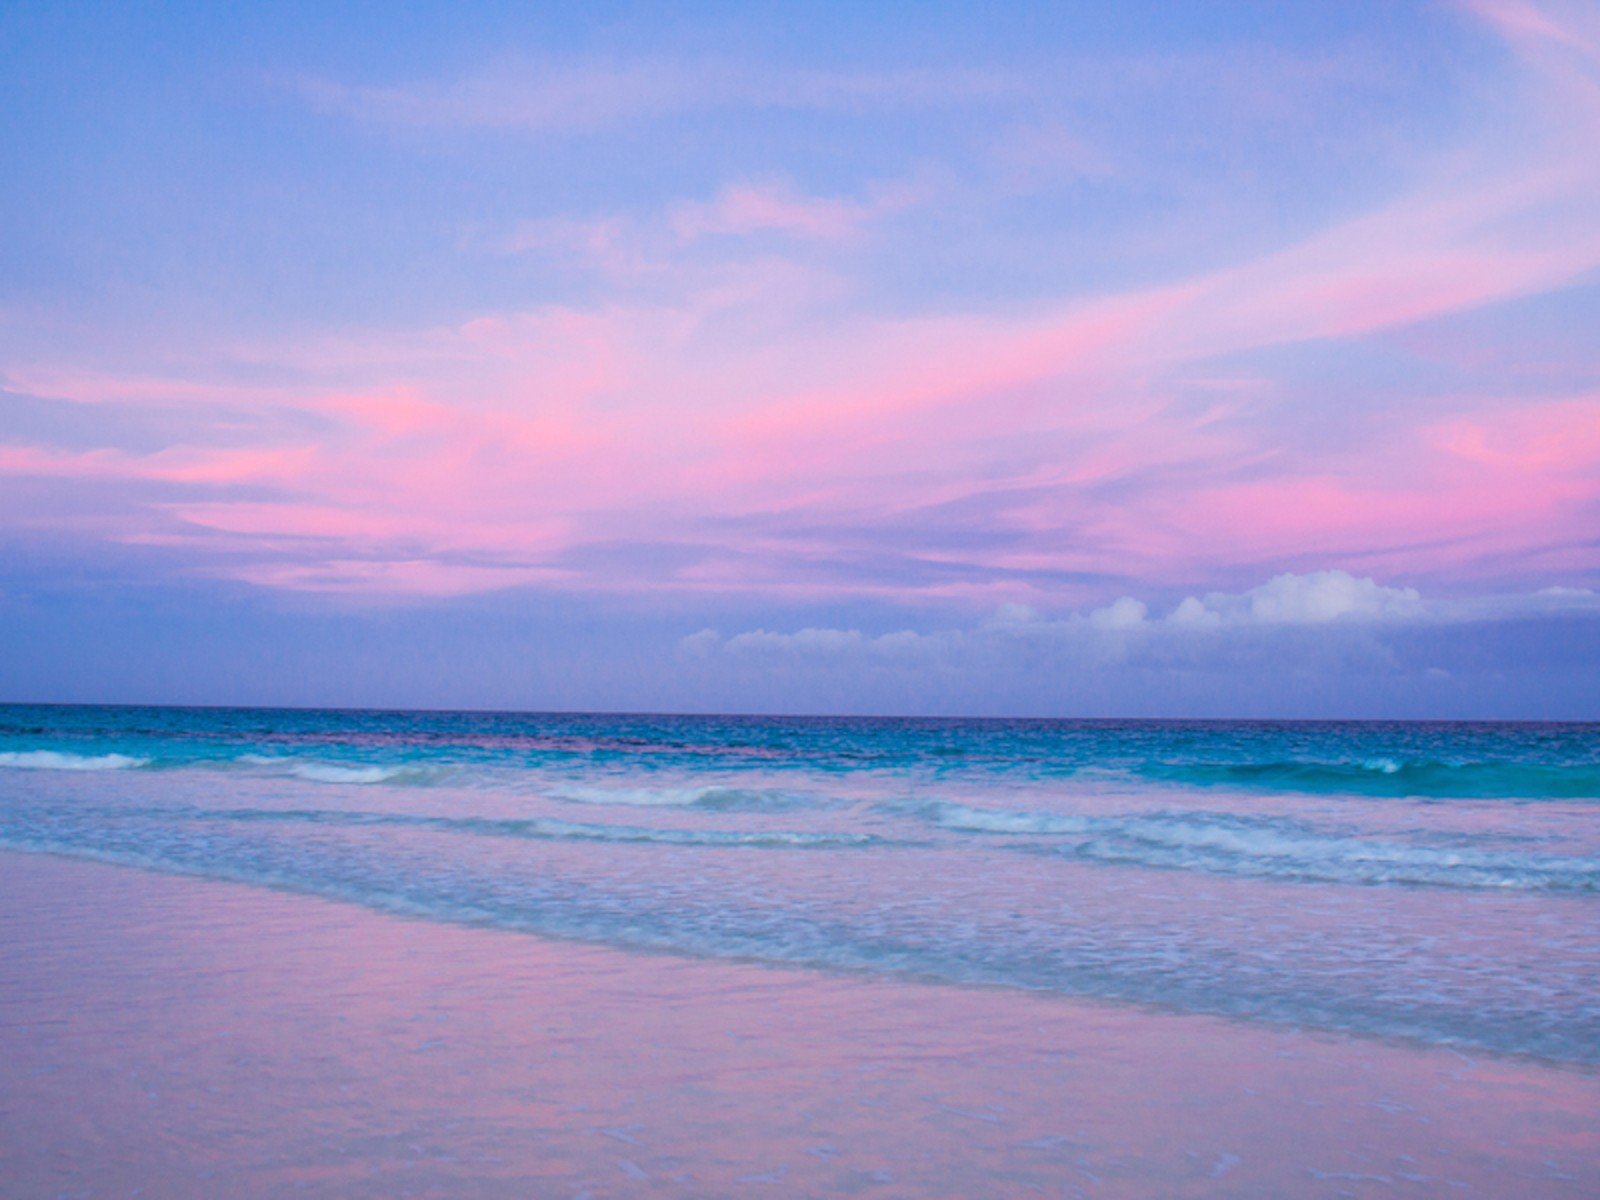 Bahamas Beaches Hd Wallpaper Background Images: Pink Sand Beach-Harbour Isle-Bahamas Wallpaper